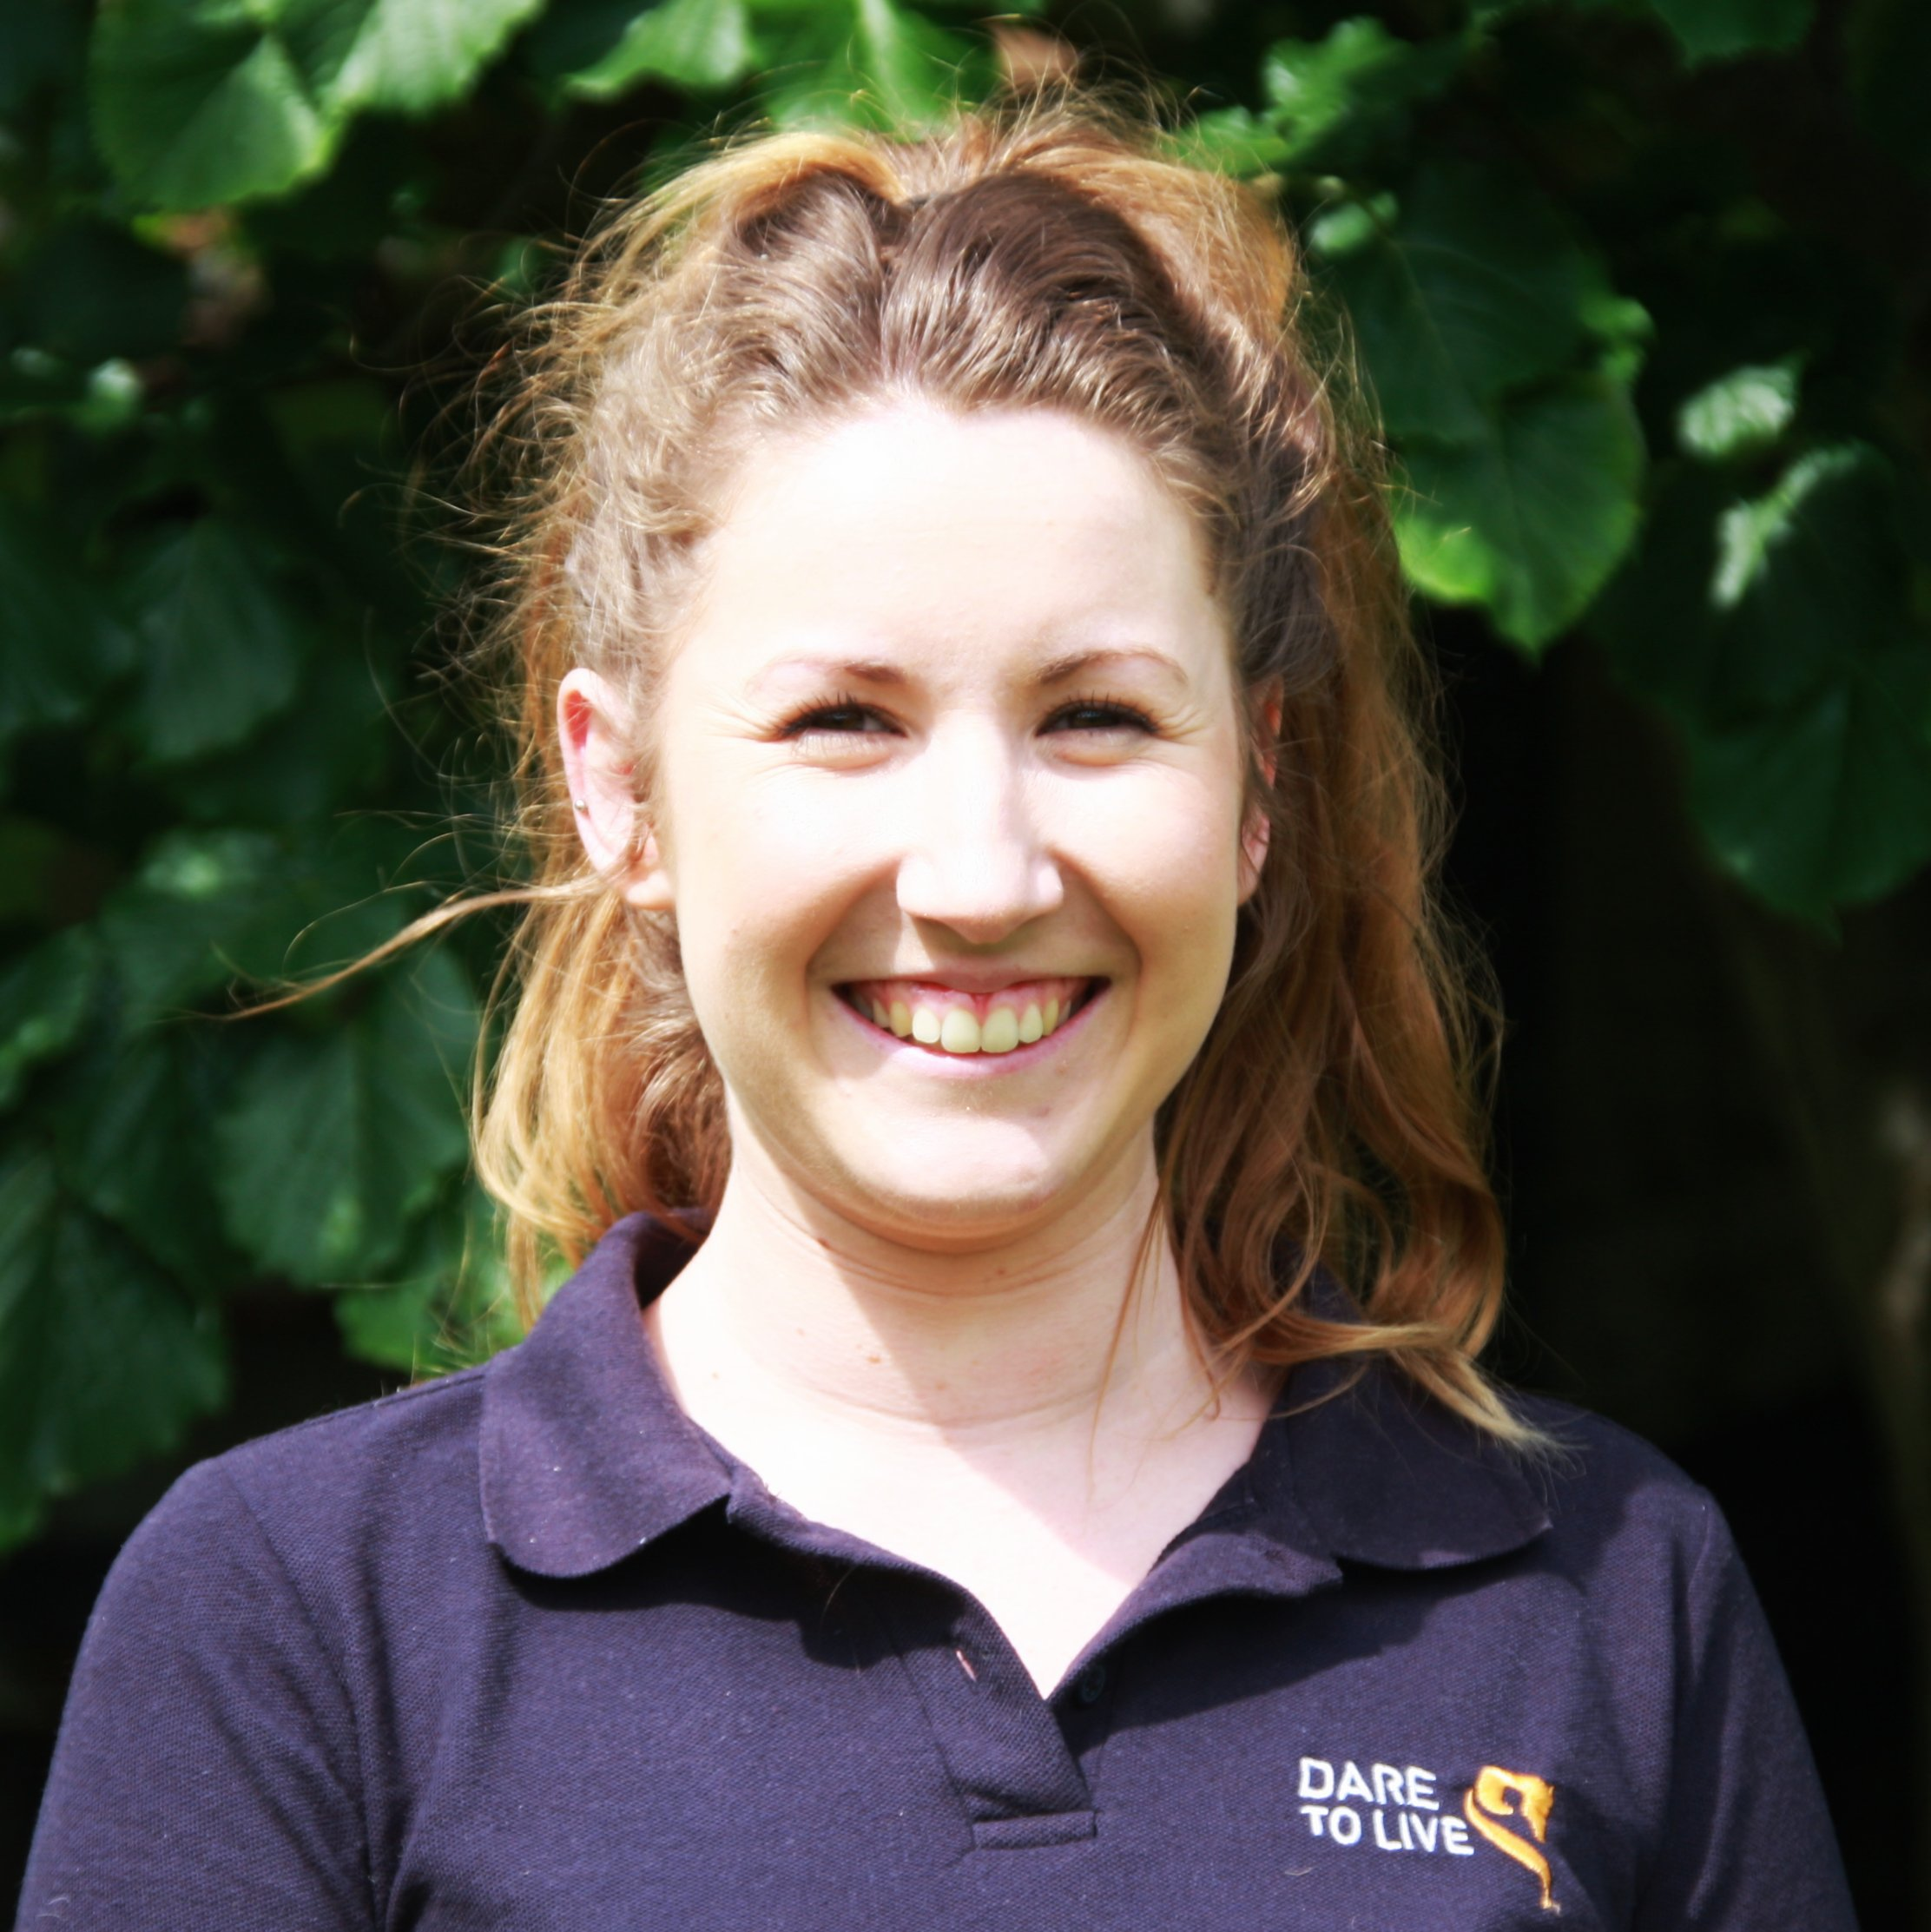 Alice Sherlock - Administration and Research Assistant